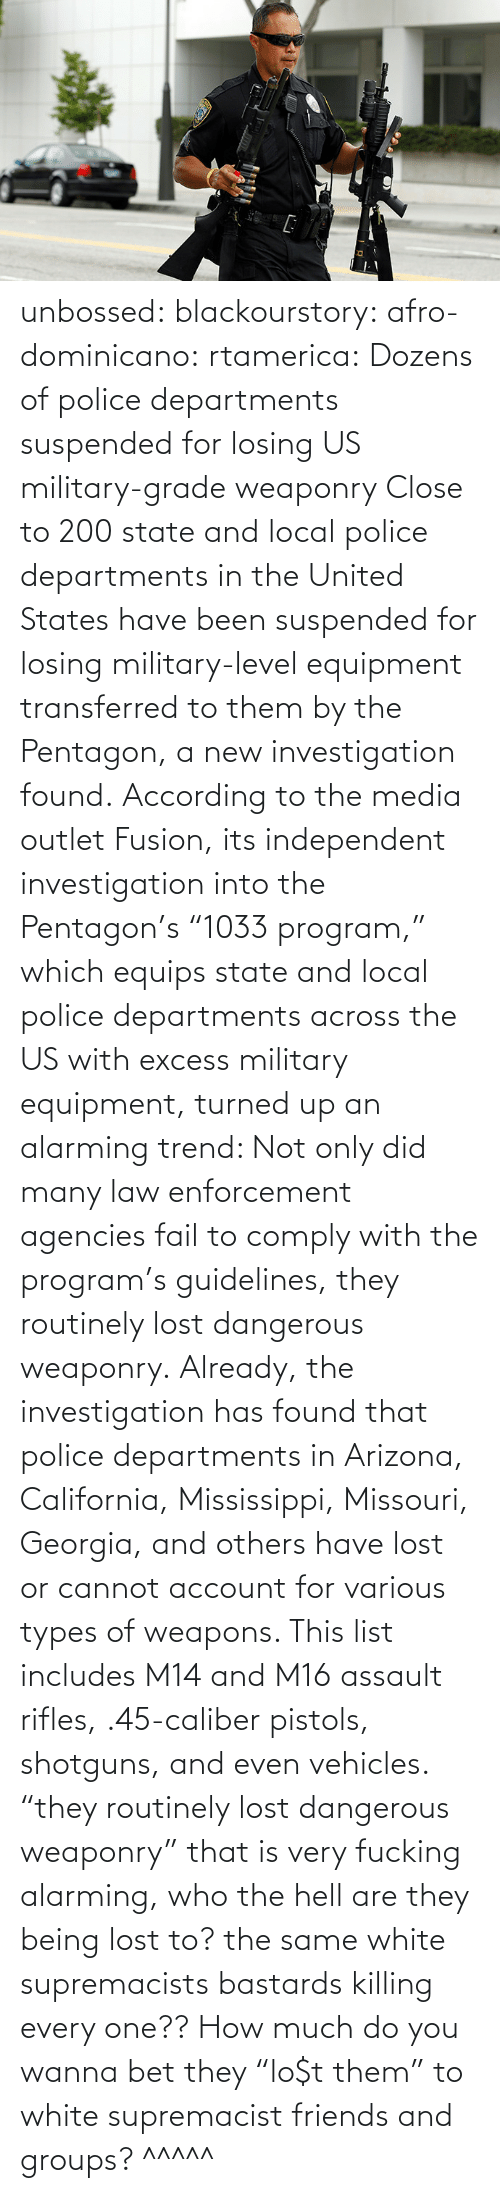 "Mississippi: unbossed: blackourstory:  afro-dominicano:  rtamerica:  Dozens of police departments suspended for losing US military-grade weaponry Close to 200 state and local police departments in the United States have been suspended for losing military-level equipment transferred to them by the Pentagon, a new investigation found. According to the media outlet Fusion, its independent investigation into the Pentagon's ""1033 program,"" which equips state and local police departments across the US with excess military equipment, turned up an alarming trend: Not only did many law enforcement agencies fail to comply with the program's guidelines, they routinely lost dangerous weaponry. Already, the investigation has found that police departments in Arizona, California, Mississippi, Missouri, Georgia, and others have lost or cannot account for various types of weapons. This list includes M14 and M16 assault rifles, .45-caliber pistols, shotguns, and even vehicles.  ""they routinely lost dangerous weaponry"" that is very fucking alarming, who the hell are they being lost to? the same white supremacists bastards killing every one??  How much do you wanna bet they ""lo$t them"" to white supremacist friends and groups?   ^^^^^"